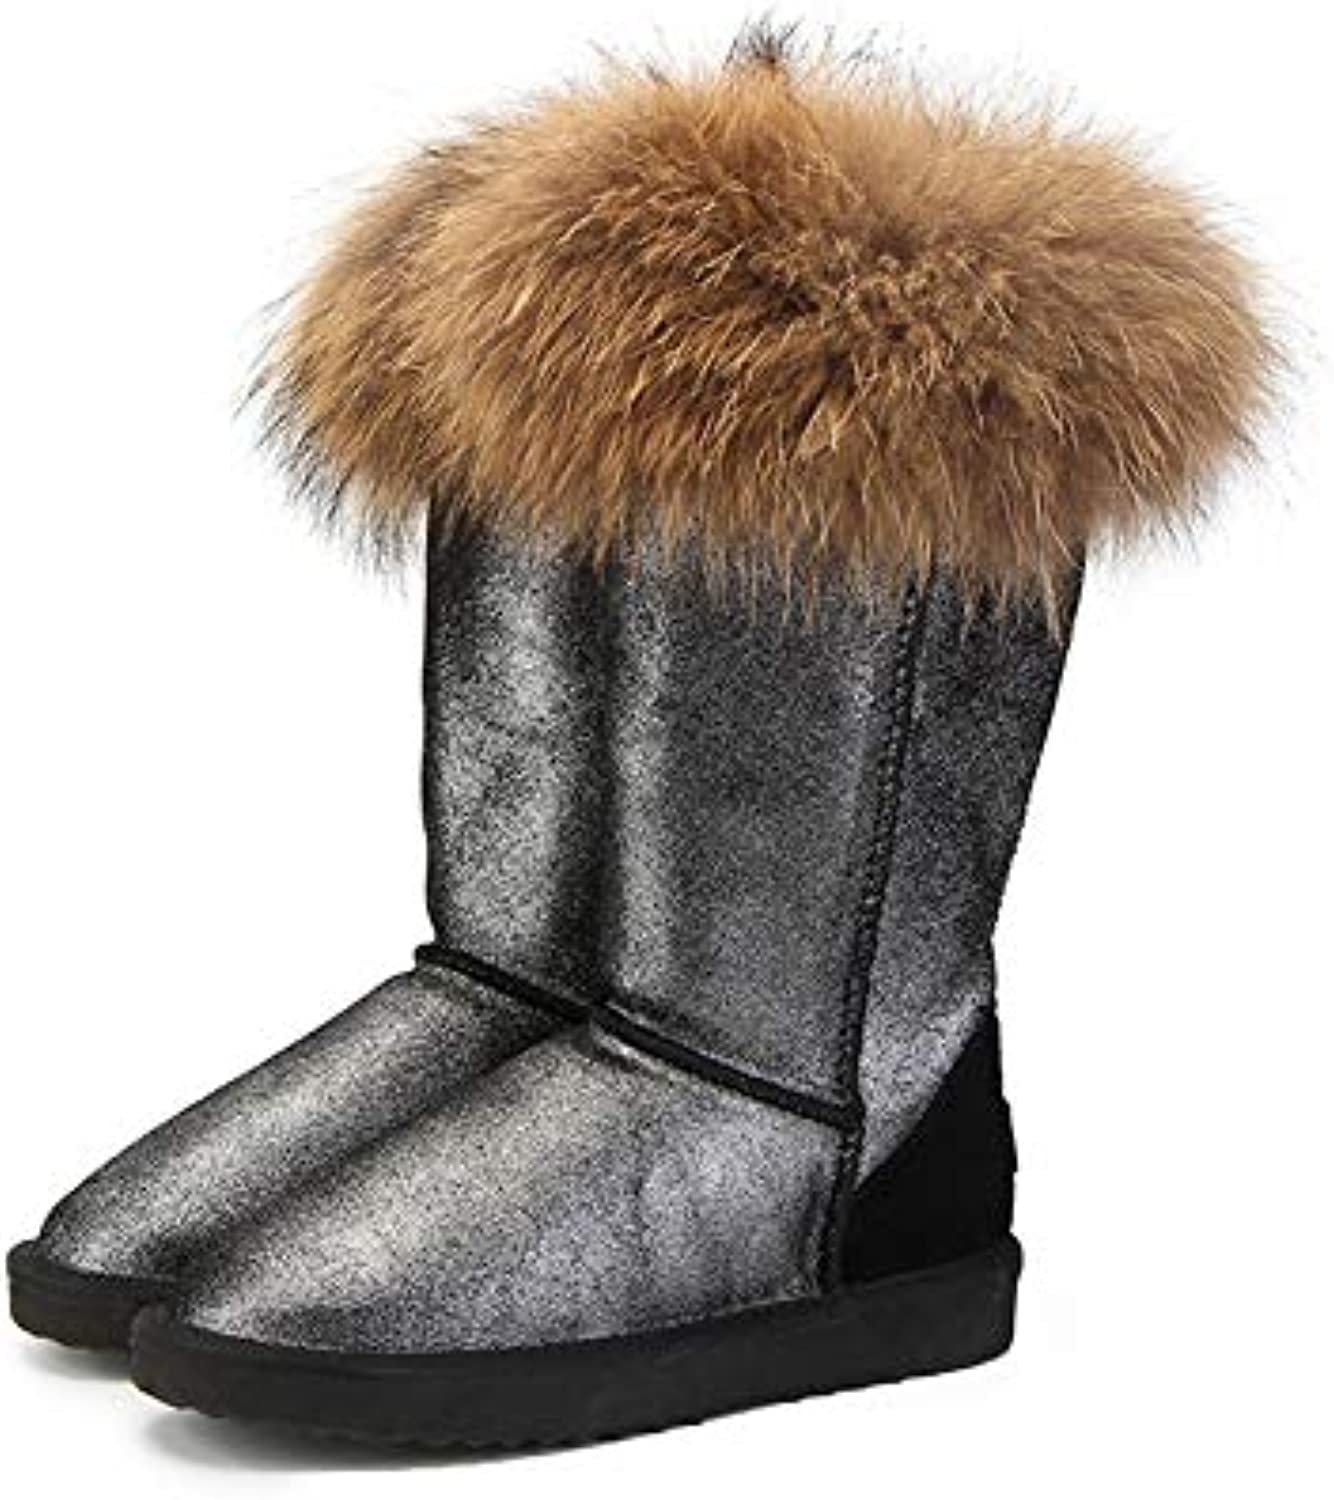 T-JULY Fashion Natural Real Fox Fur Women's Winter Warm Long Snow Boots Genuine Cow Leather High Winter Boots